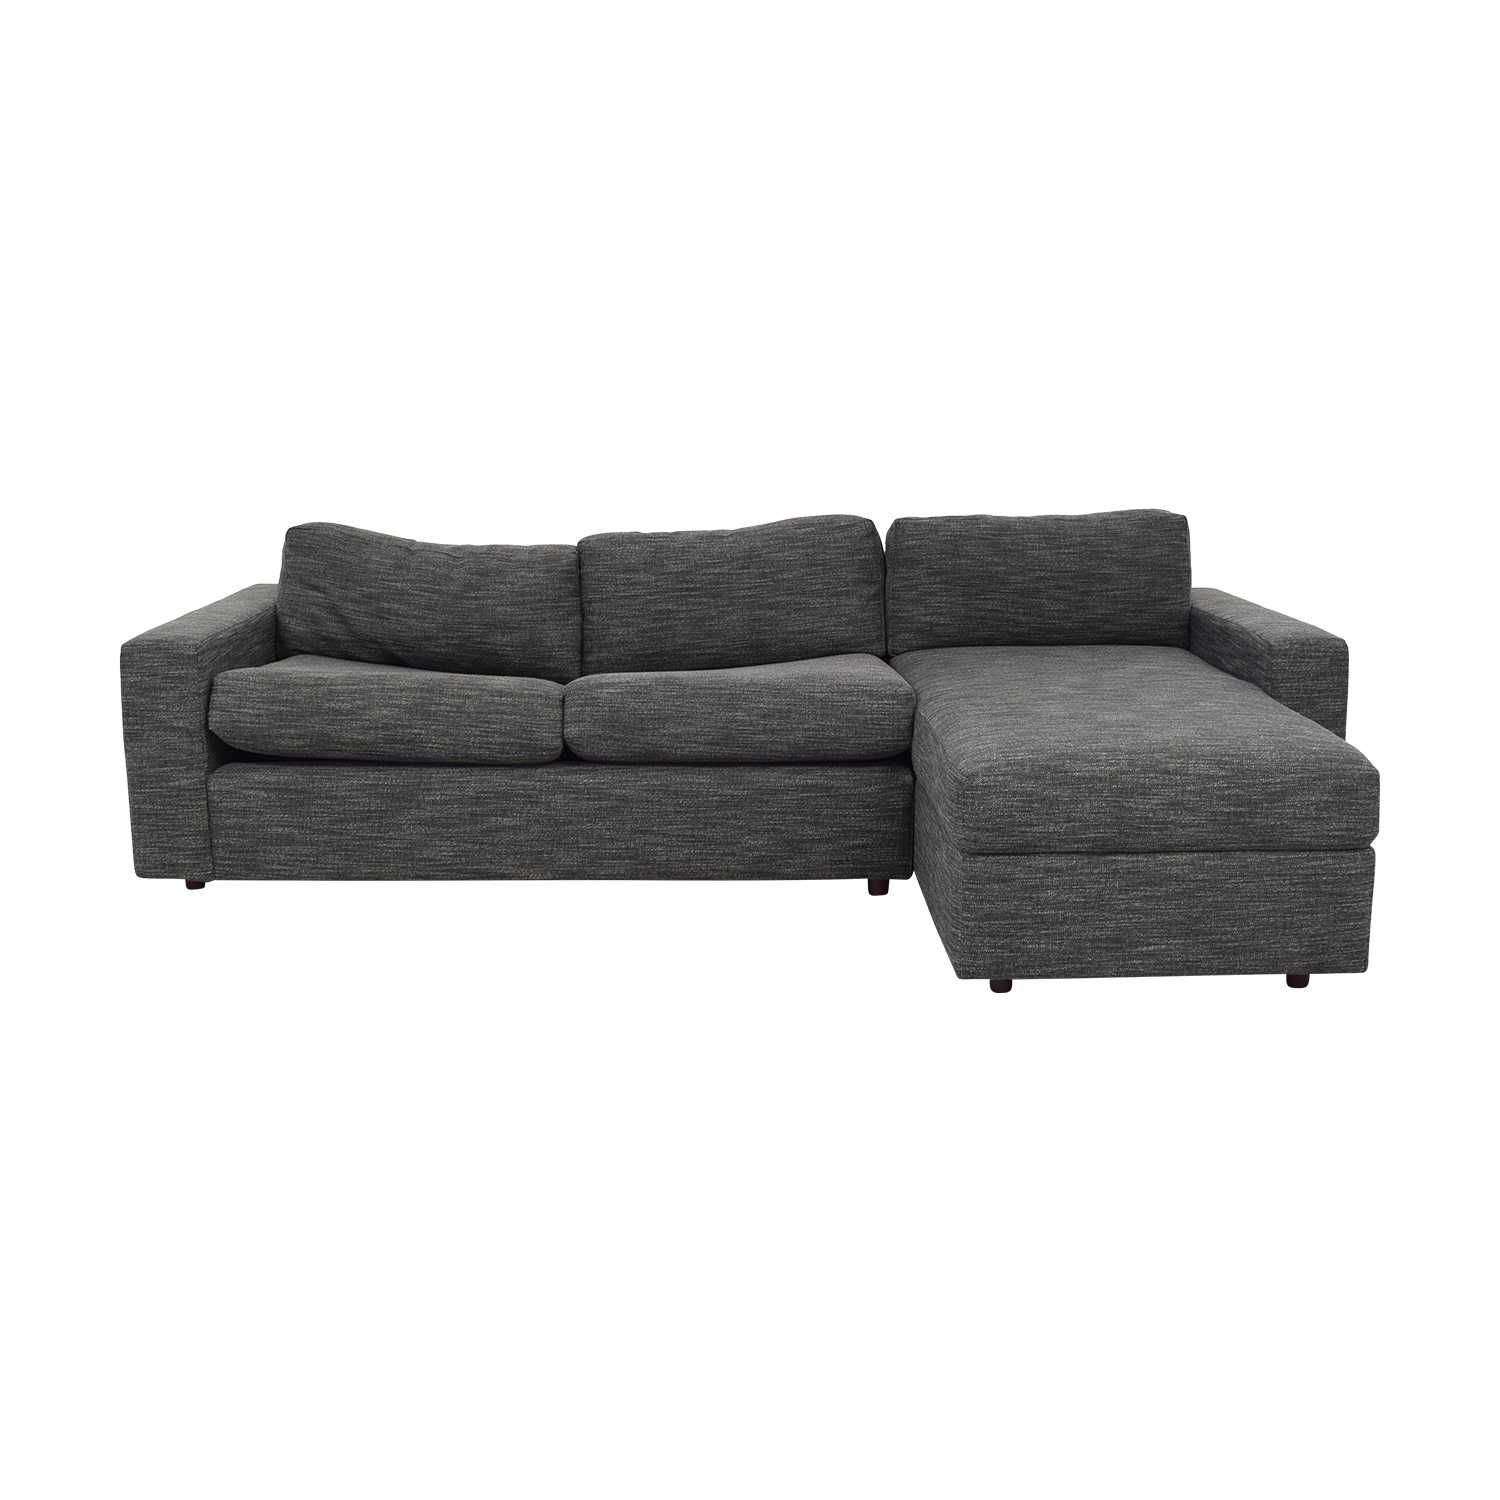 67% OFF   West Elm West Elm Urban Sleeper Sofa With Right Arm Storage  Chaise / Sofas